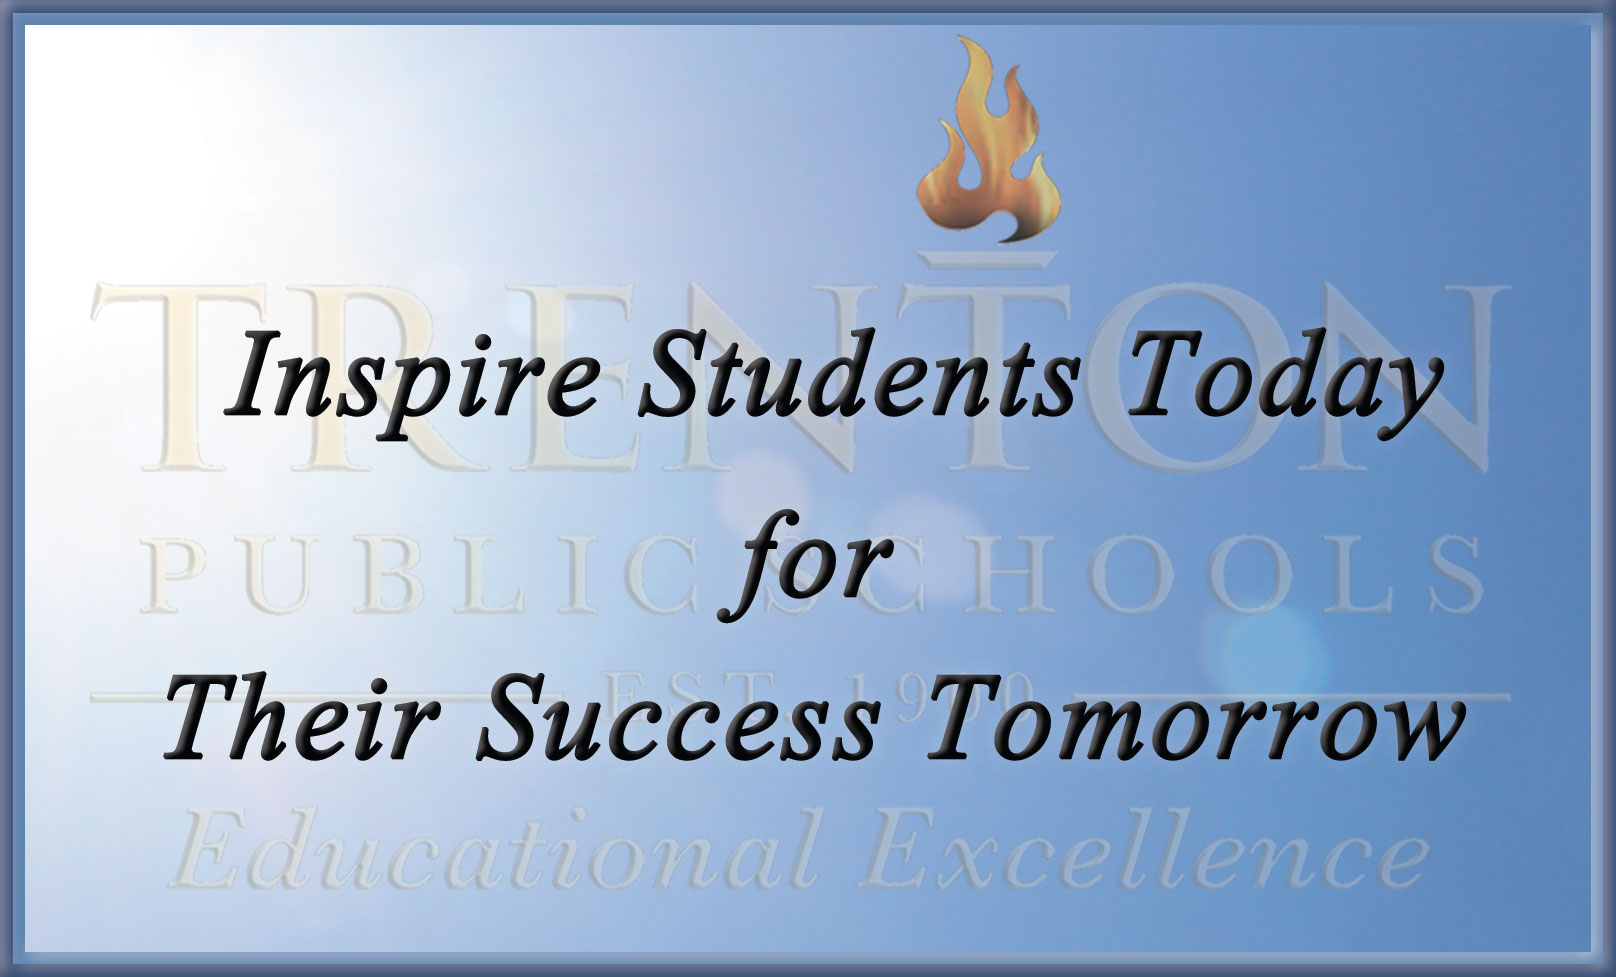 Inspire stydents today for their success tomorrow